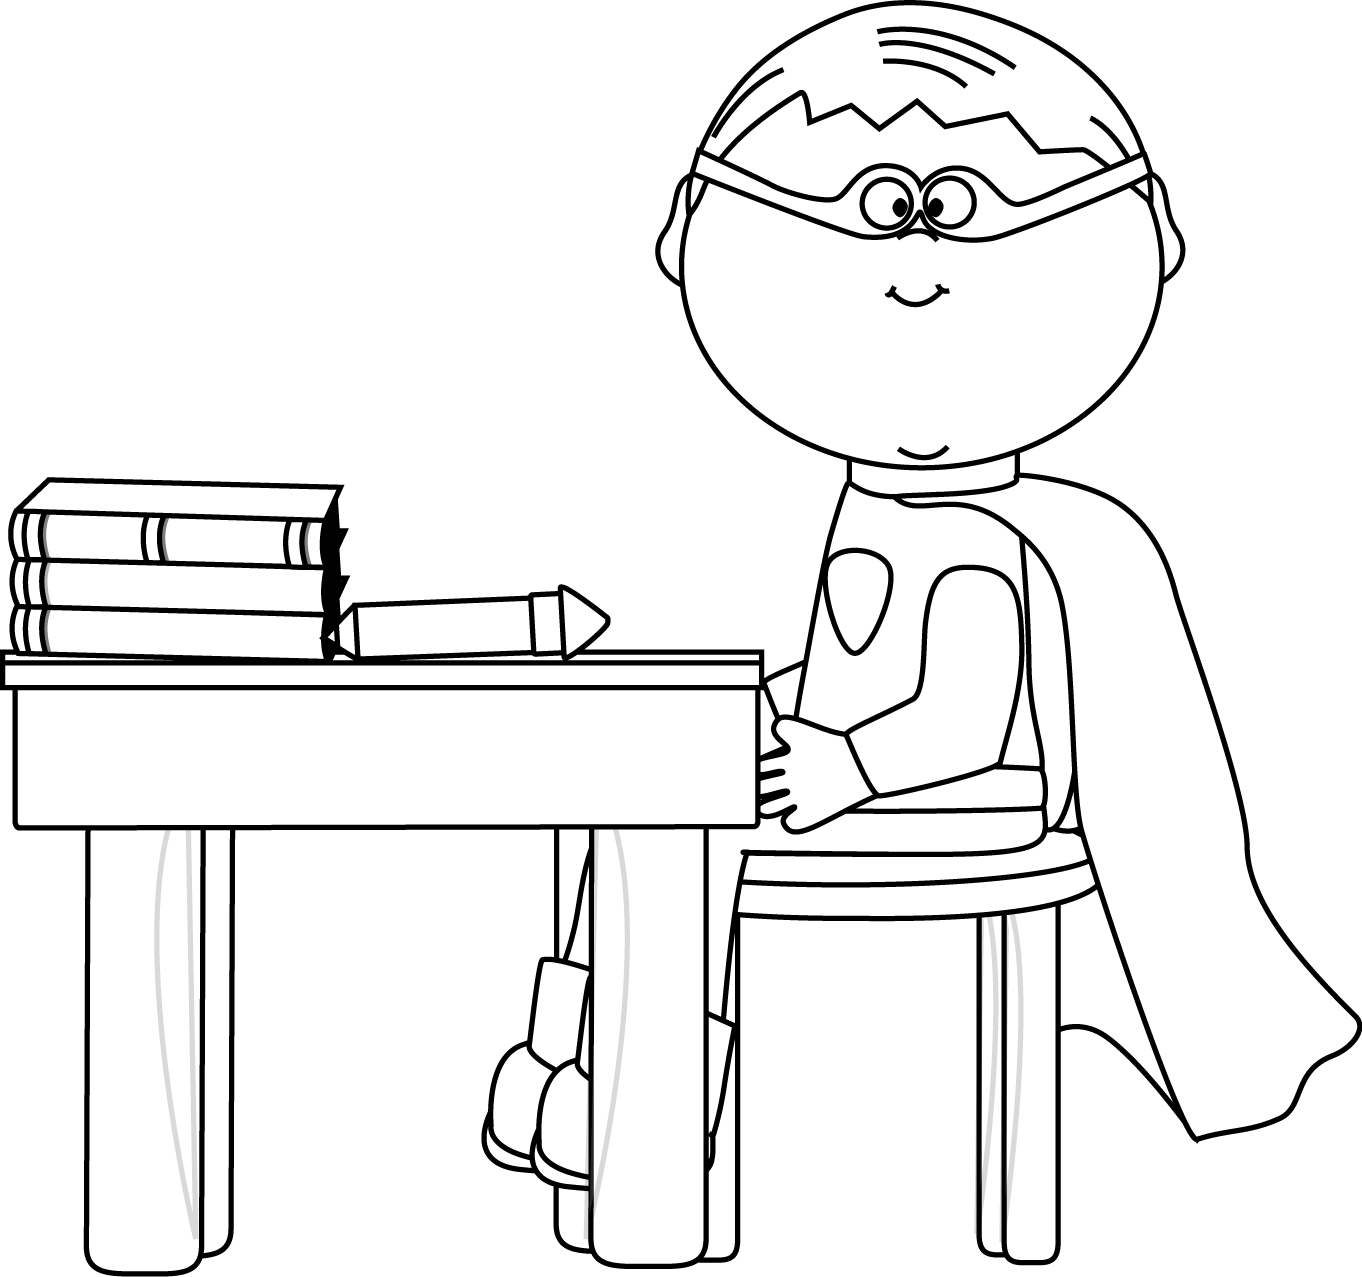 Black and White Boy Superhero at School Desk